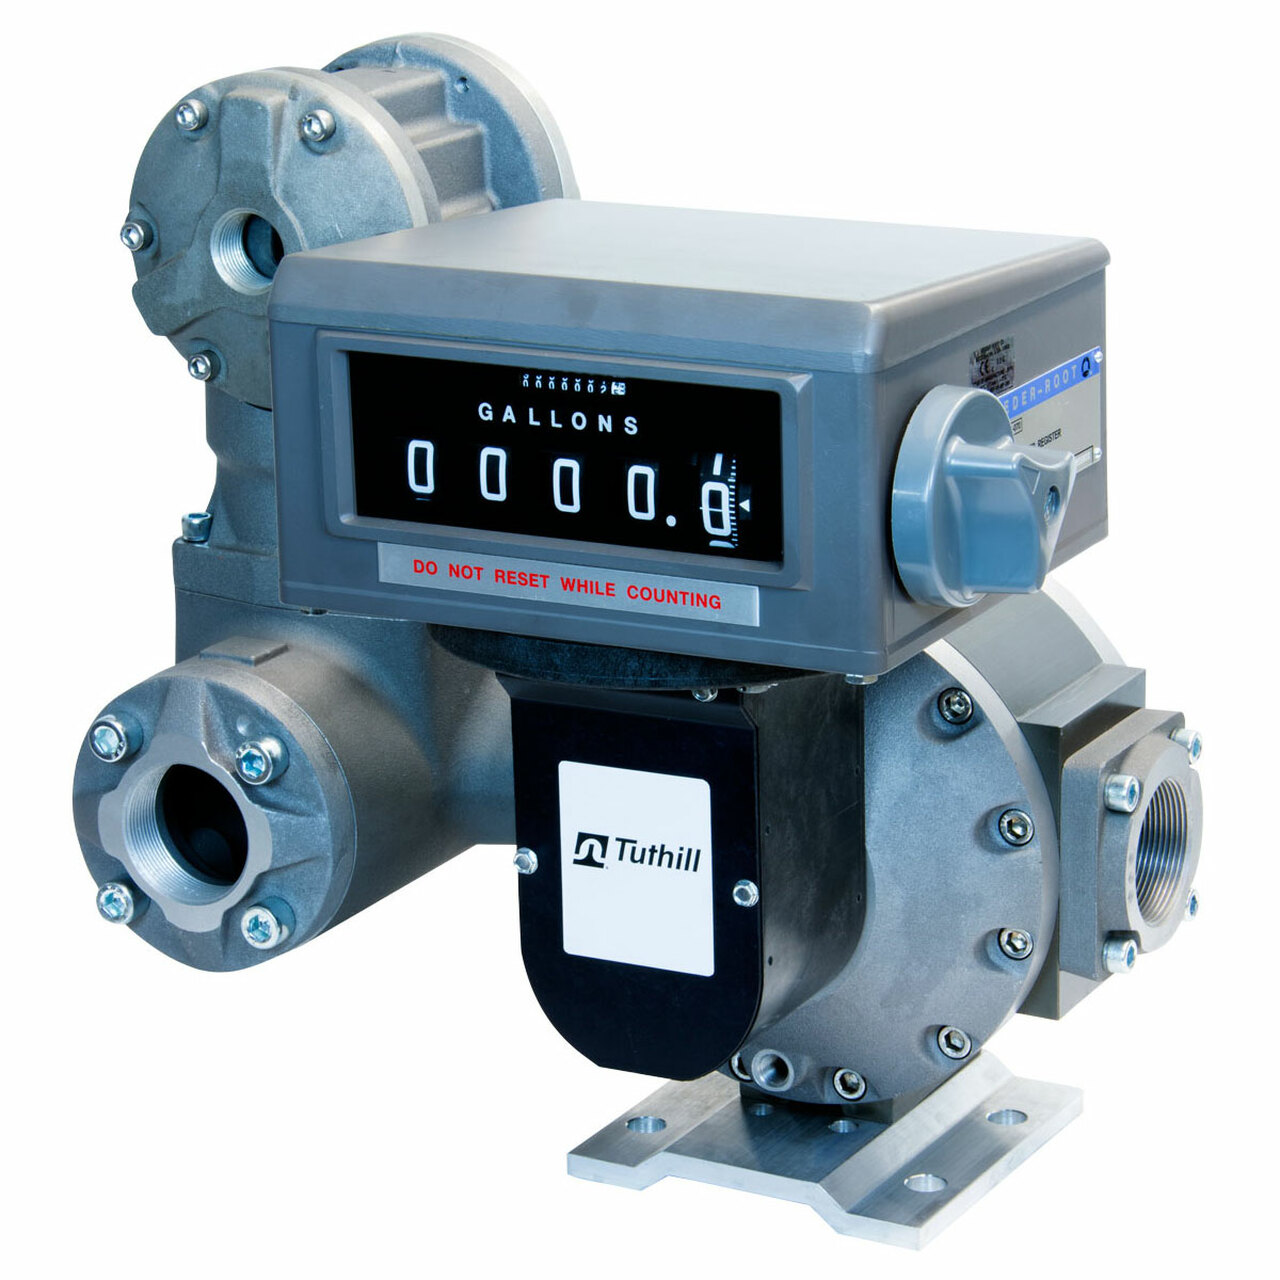 Tuthill TS Series 3 in  NPT Oval Gear Meter w/ Mechanical Register  (Liters), Strainer, and Air Eliminator